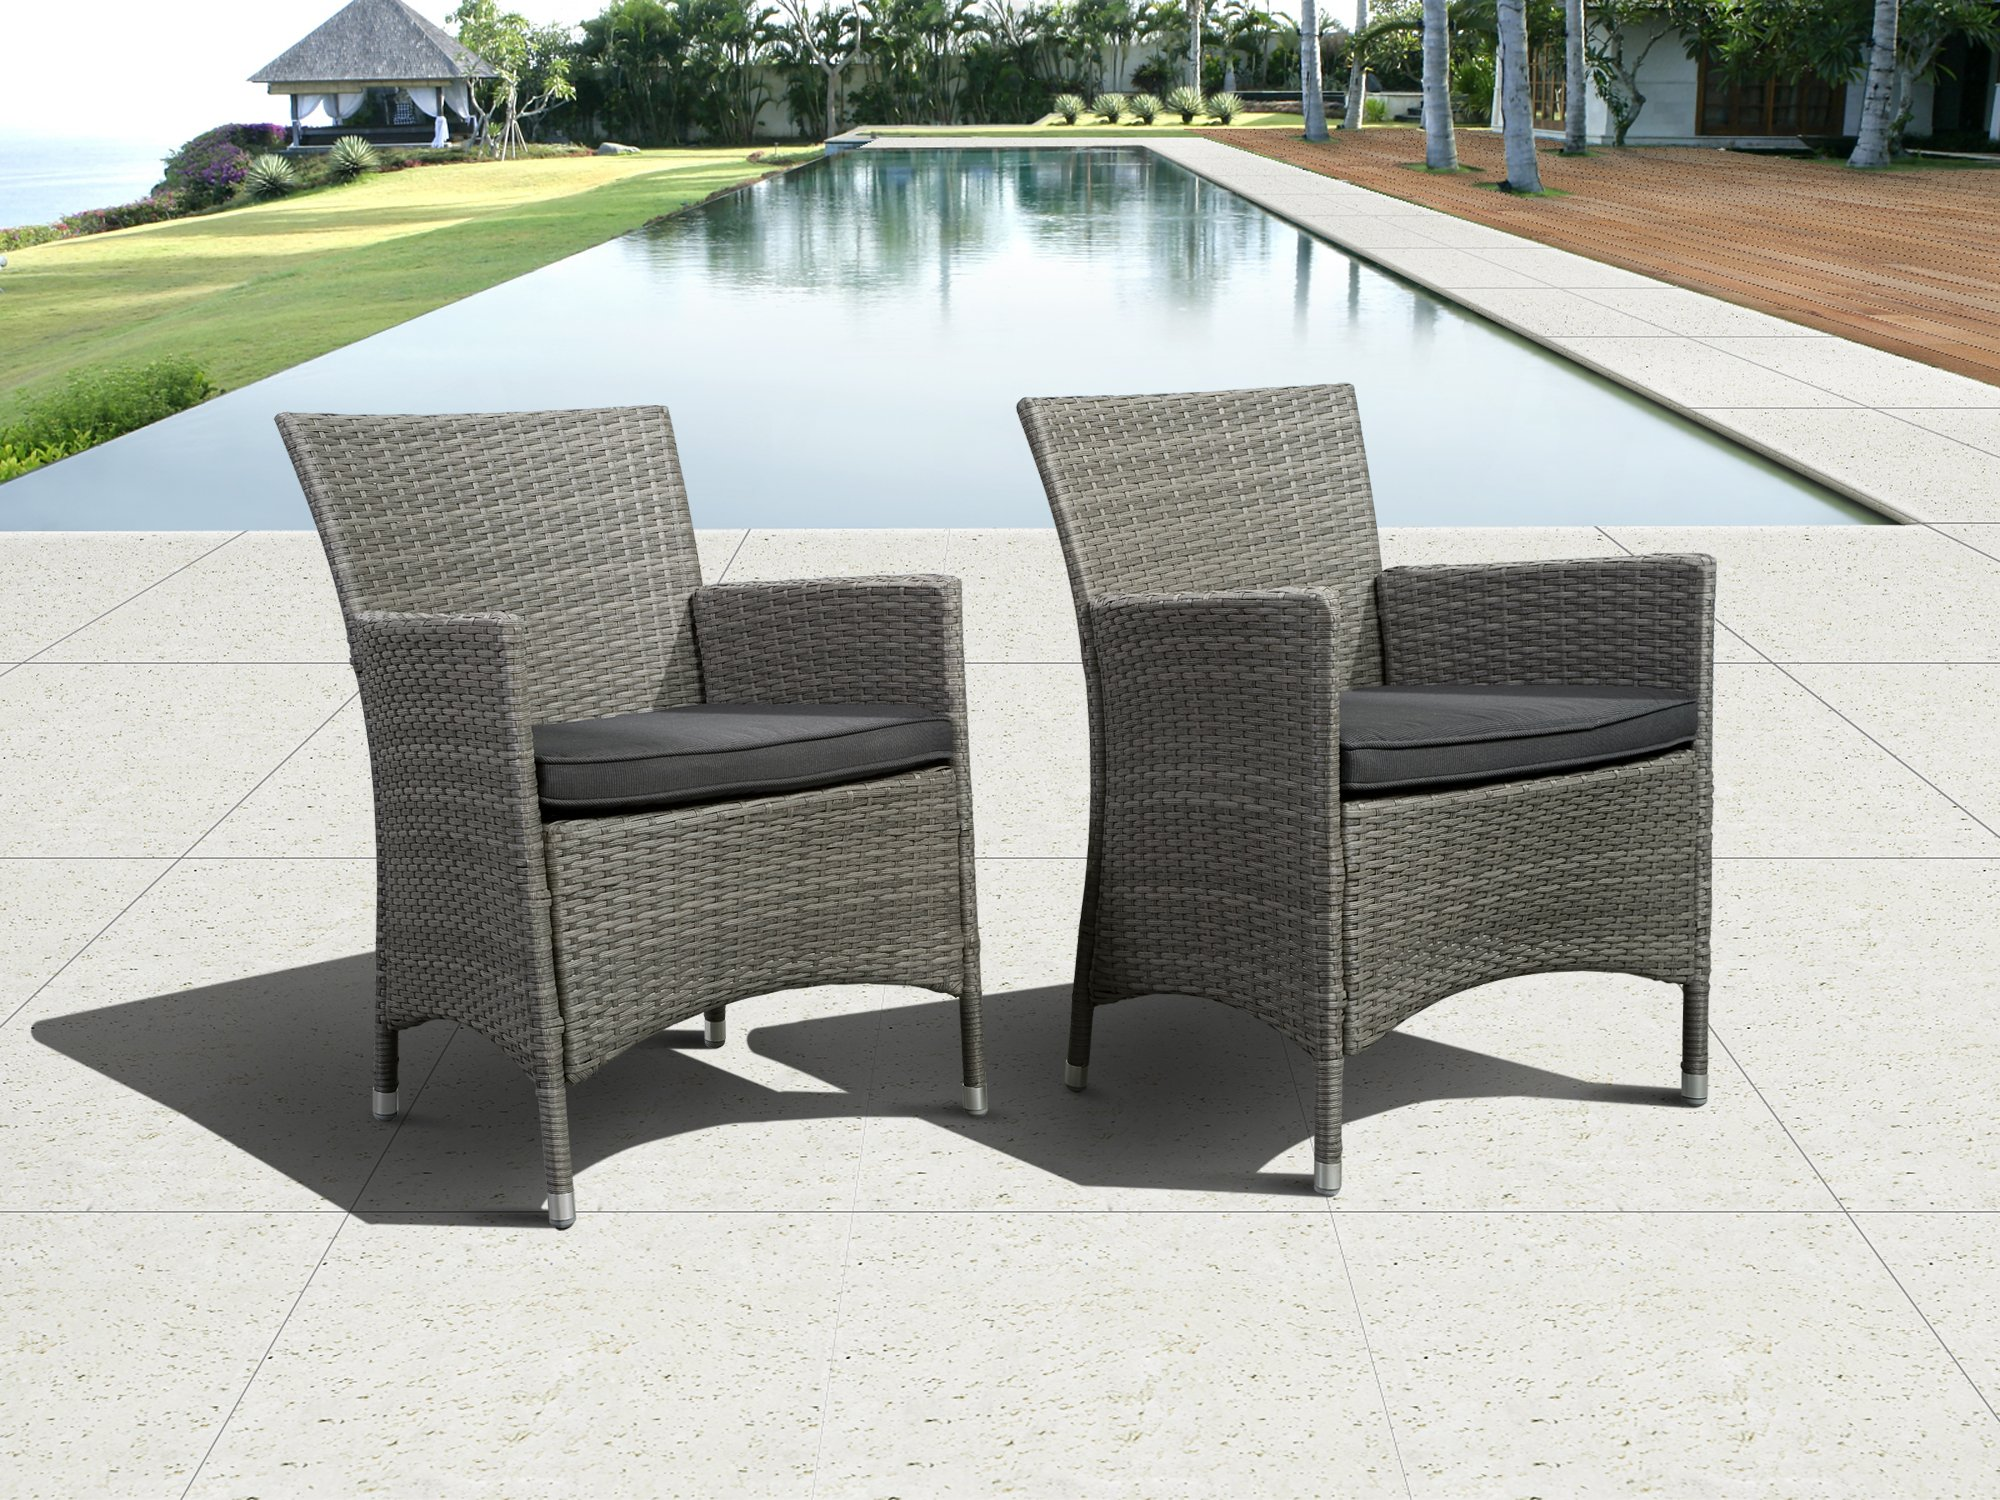 "Atlantic Liberty Deluxe Wicker Armchair, Grey, Set of 2 - Atlantic Lifestyle Collection 2 armchairs 23.5"" W x 24.5"" D x 35"" H w/ cushions. Seating Dimensions21Wx18.5Dx18.5H. High quality synthetic wicker construction. Its resistance to weather and UV radiation makes the set durable and enjoyable. - patio-furniture, patio-chairs, patio - 91pT3yui%2BGL -"